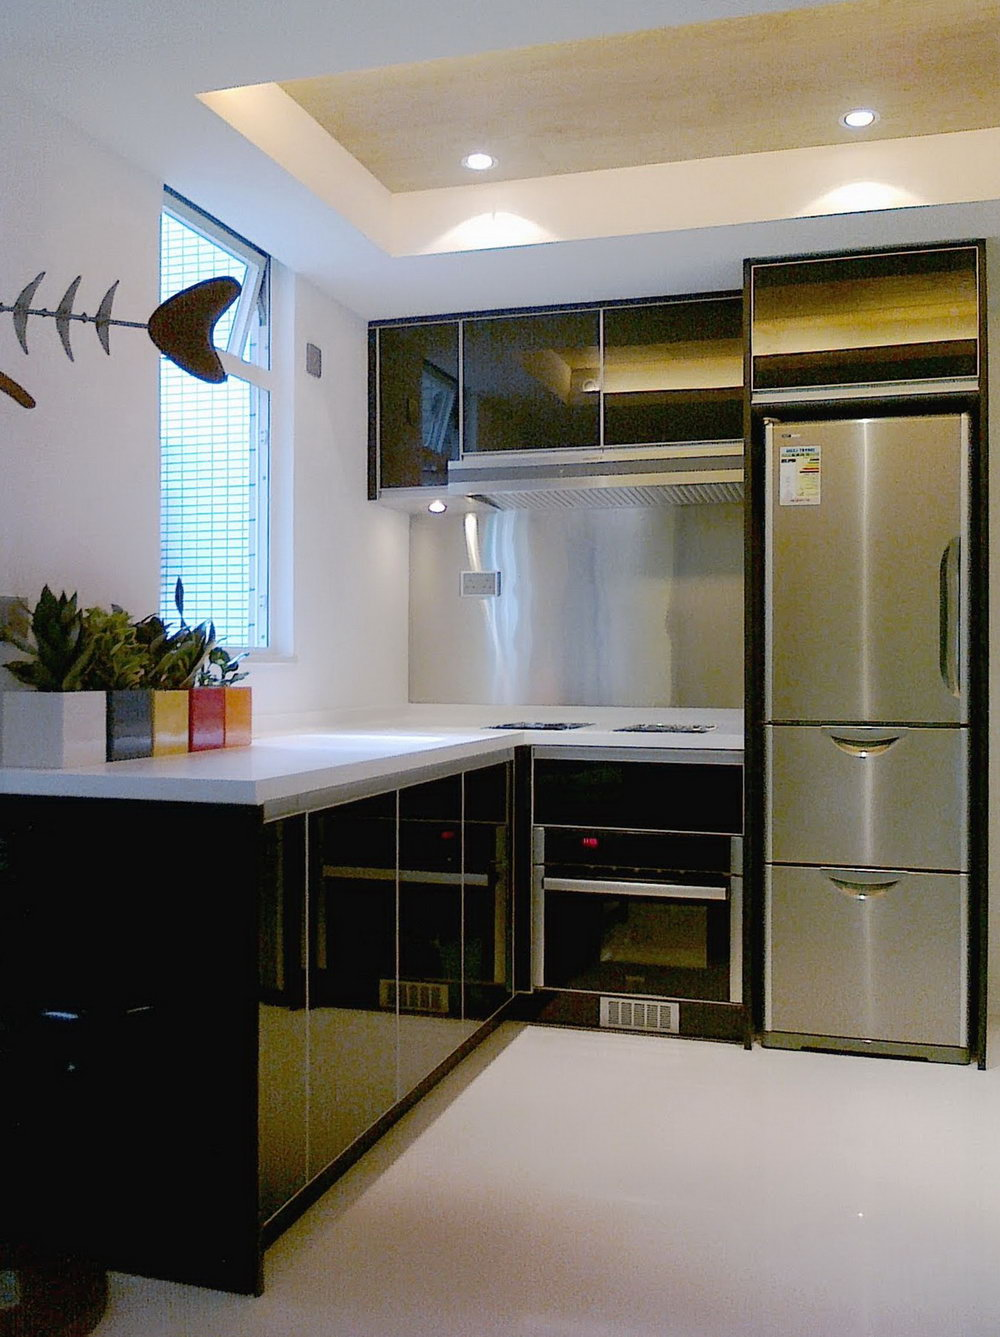 Average Cost Of Kitchen Cabinets Installed